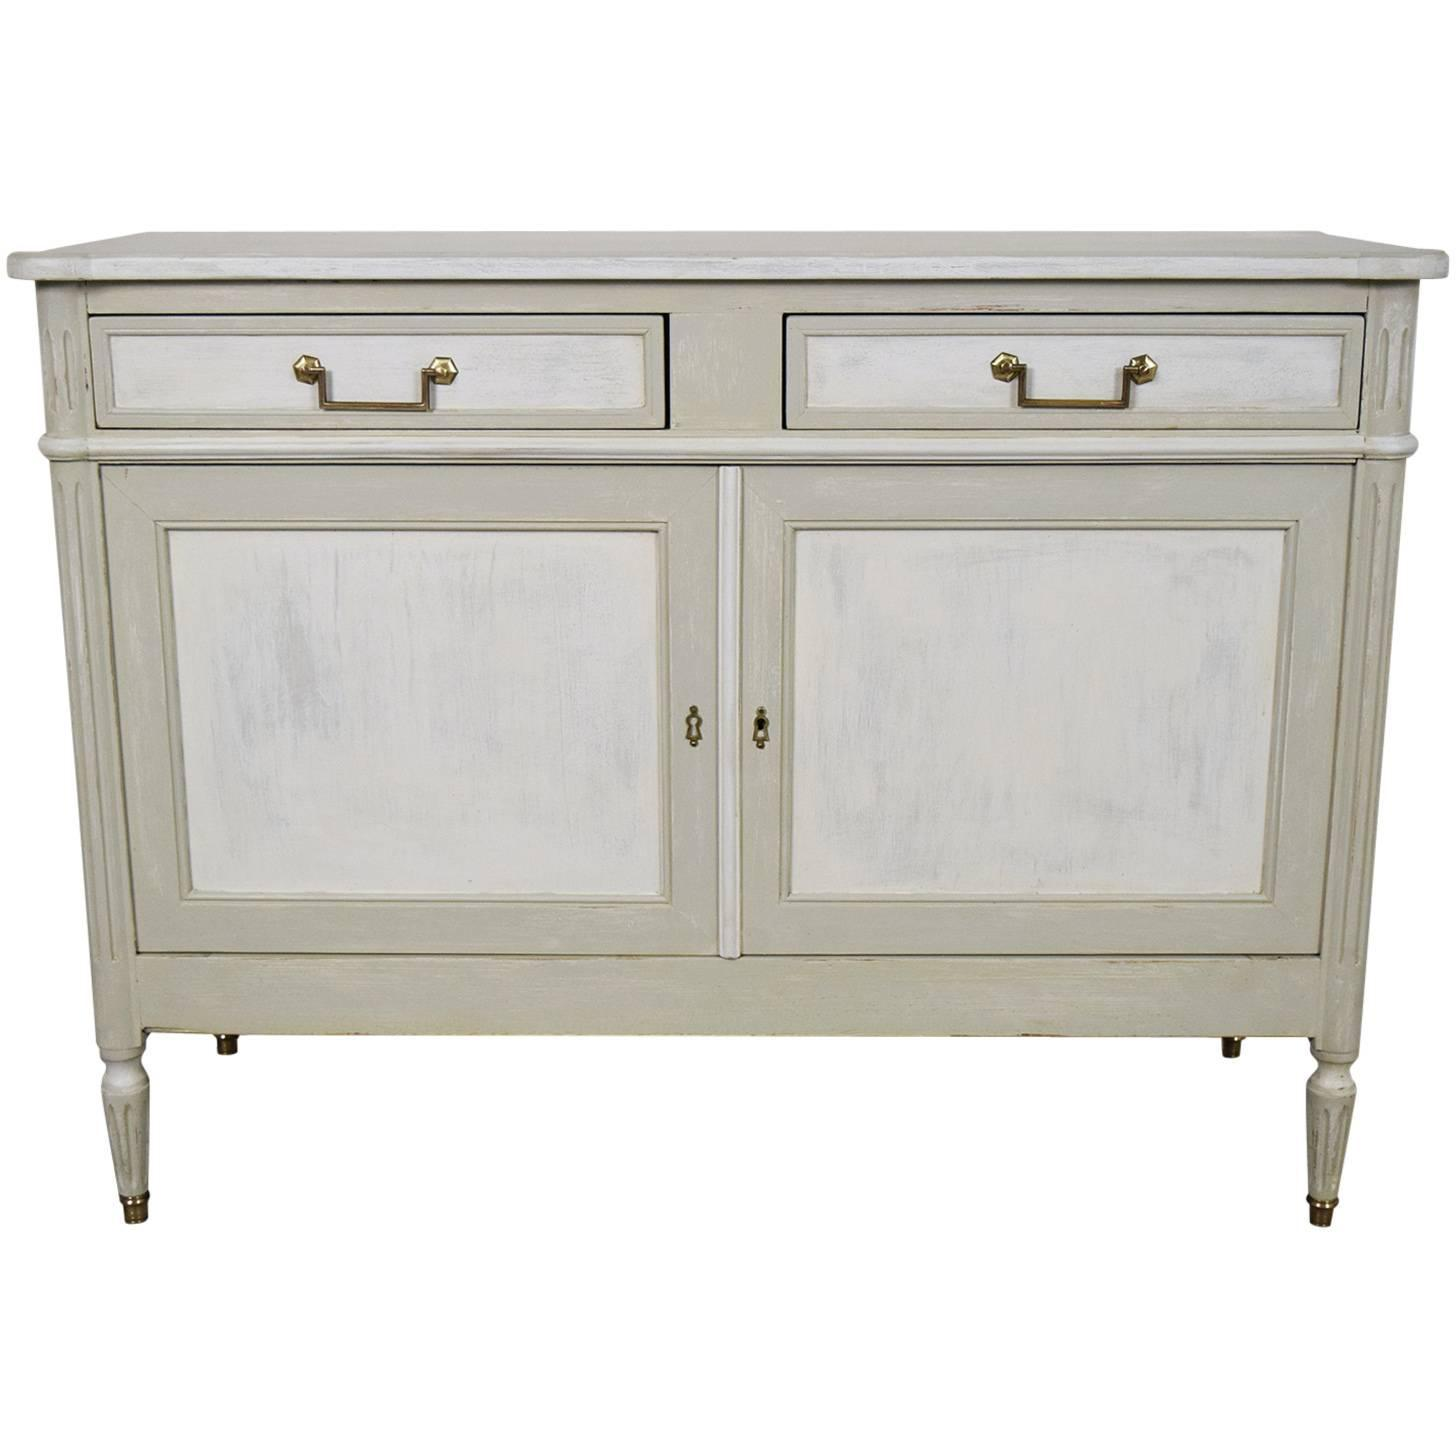 Antique french louis xvi painted buffet or sideboard at for Painted buffet sideboard